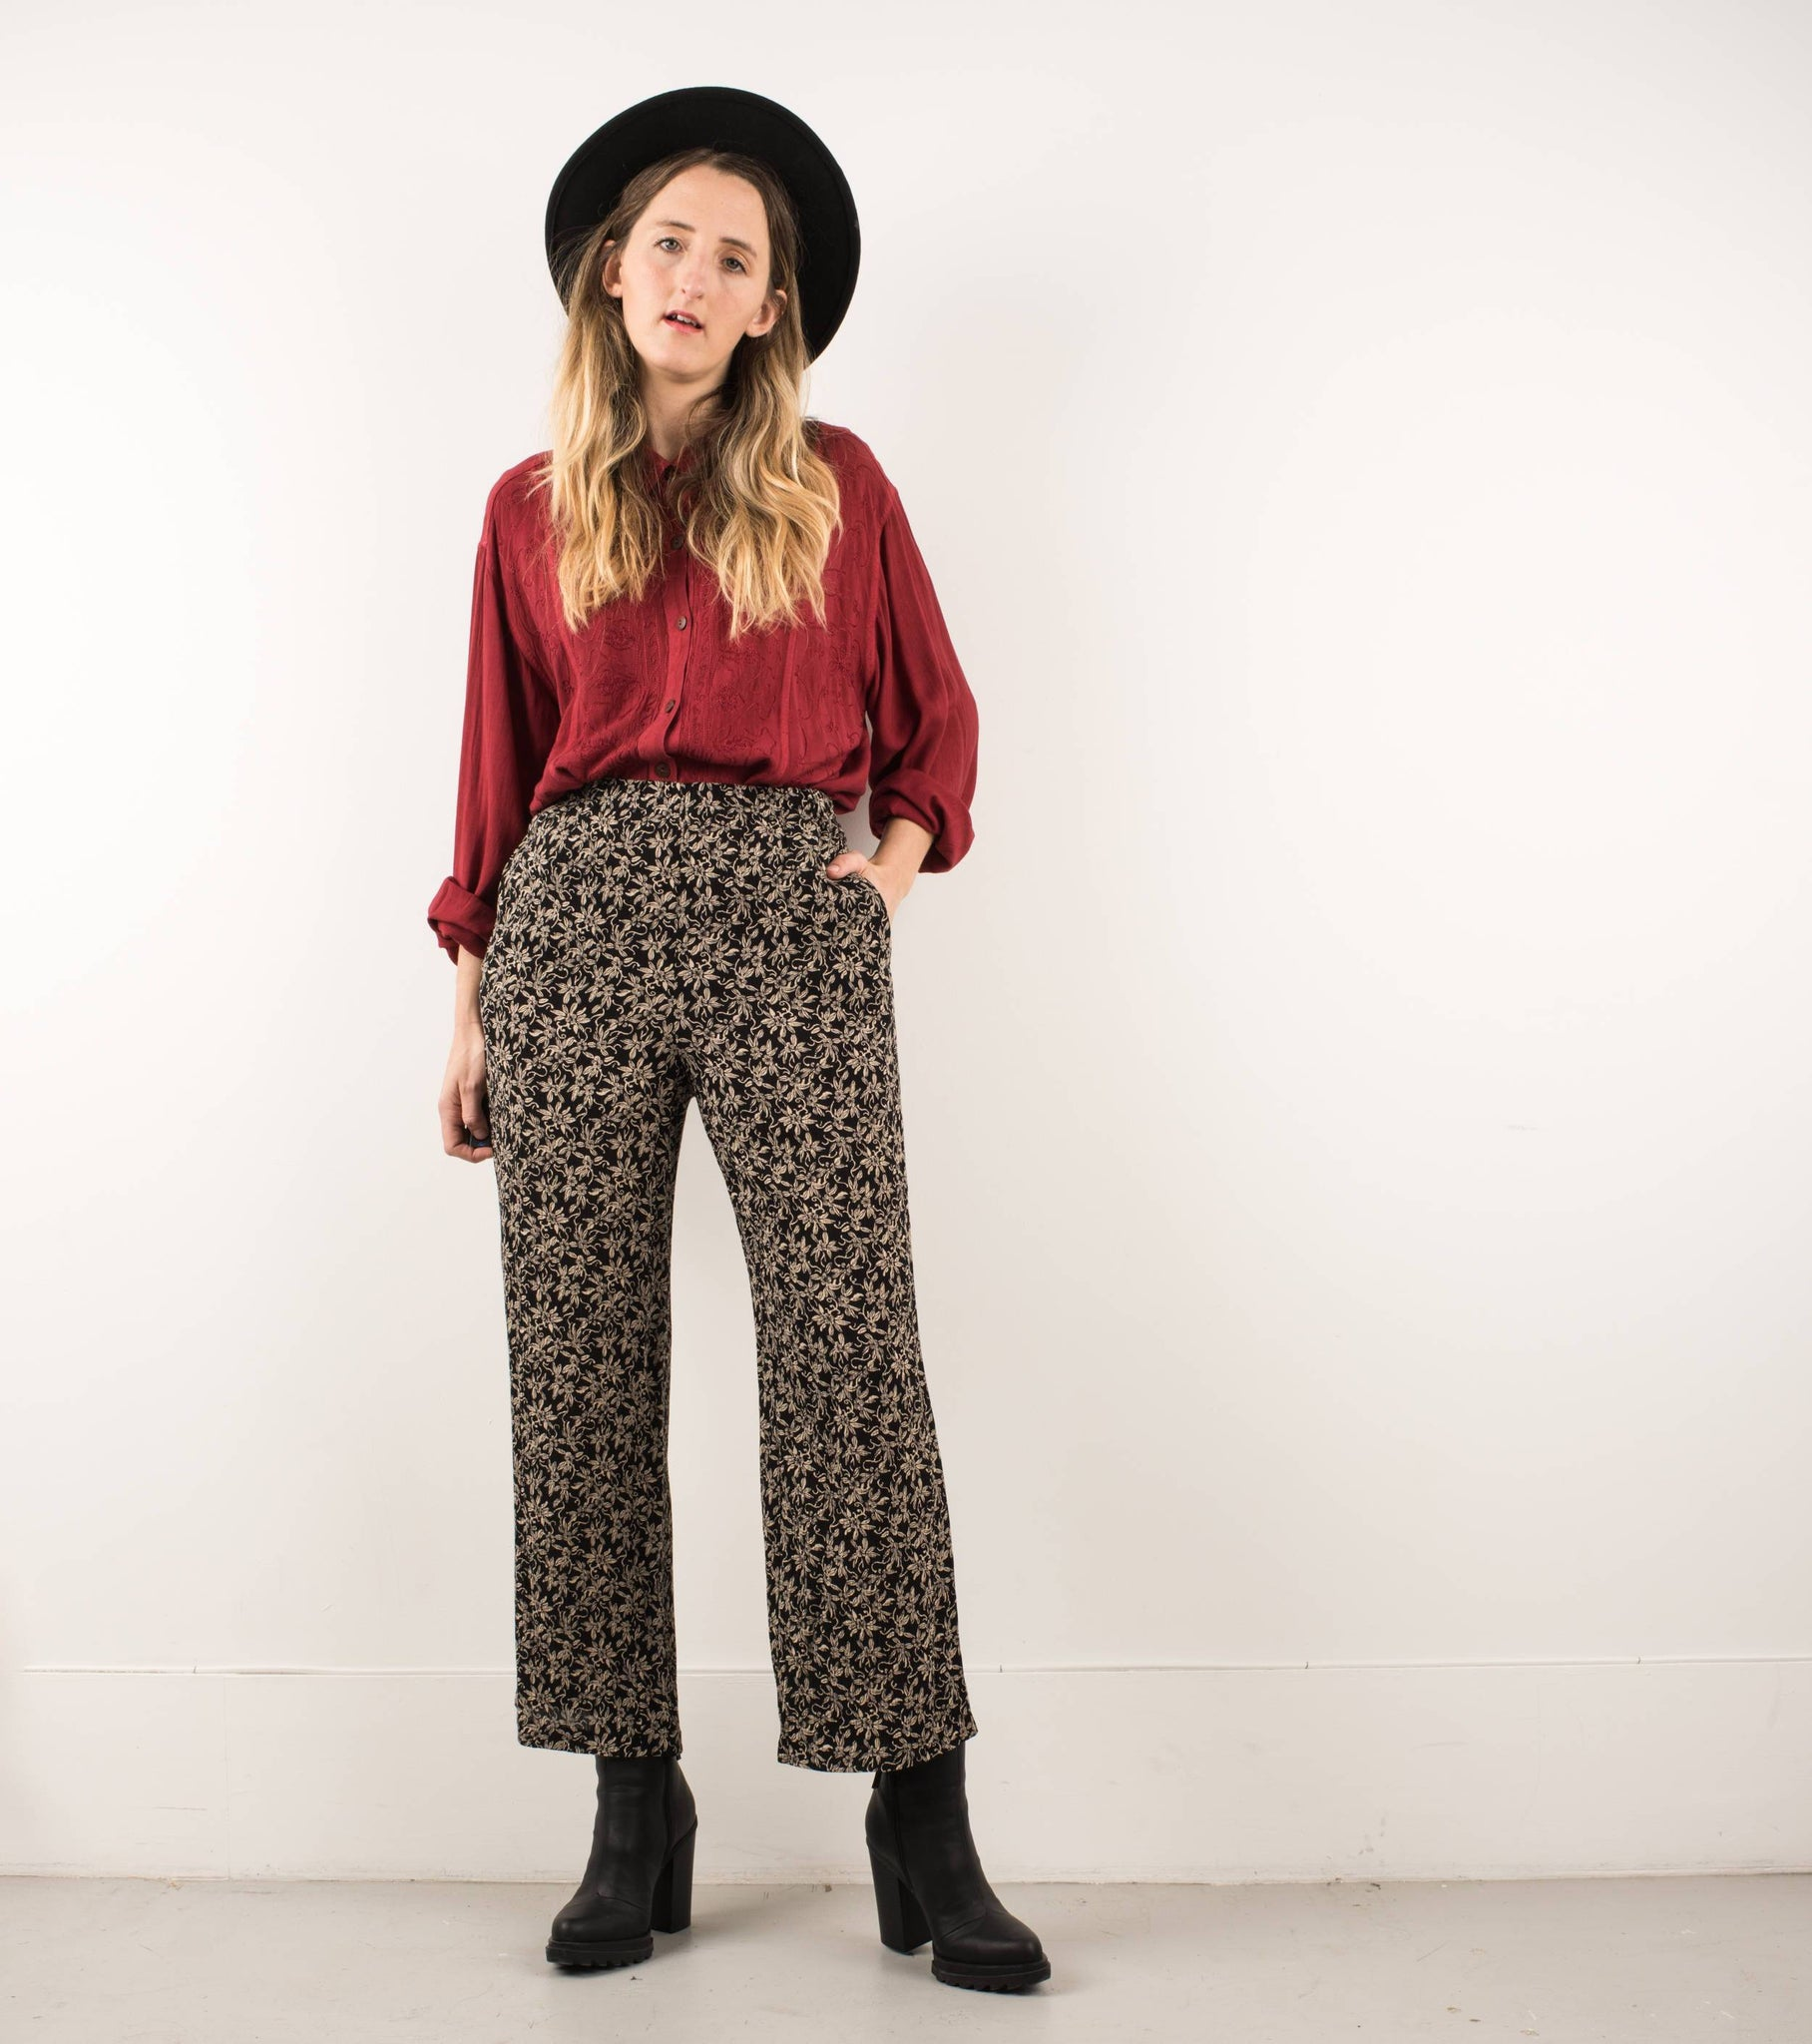 Vintage Black + Almond Floral Elastic Waist Crinkle Pants / S - Closed Caption